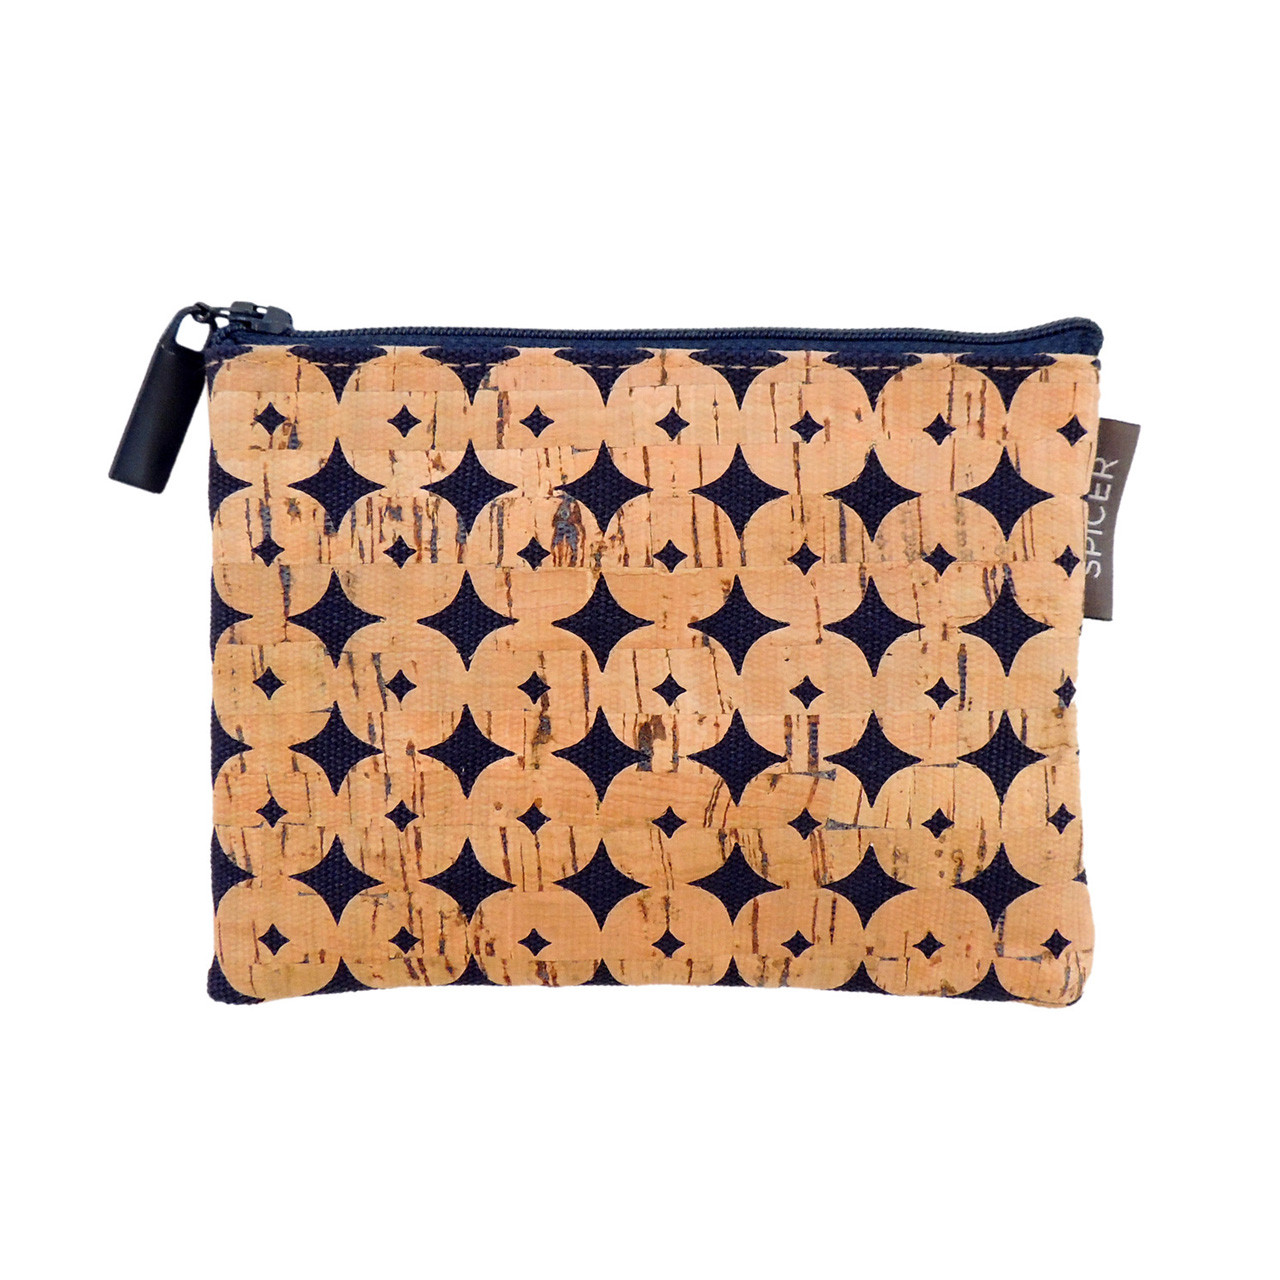 Cork Mini Pouch in Navy Cork Dots